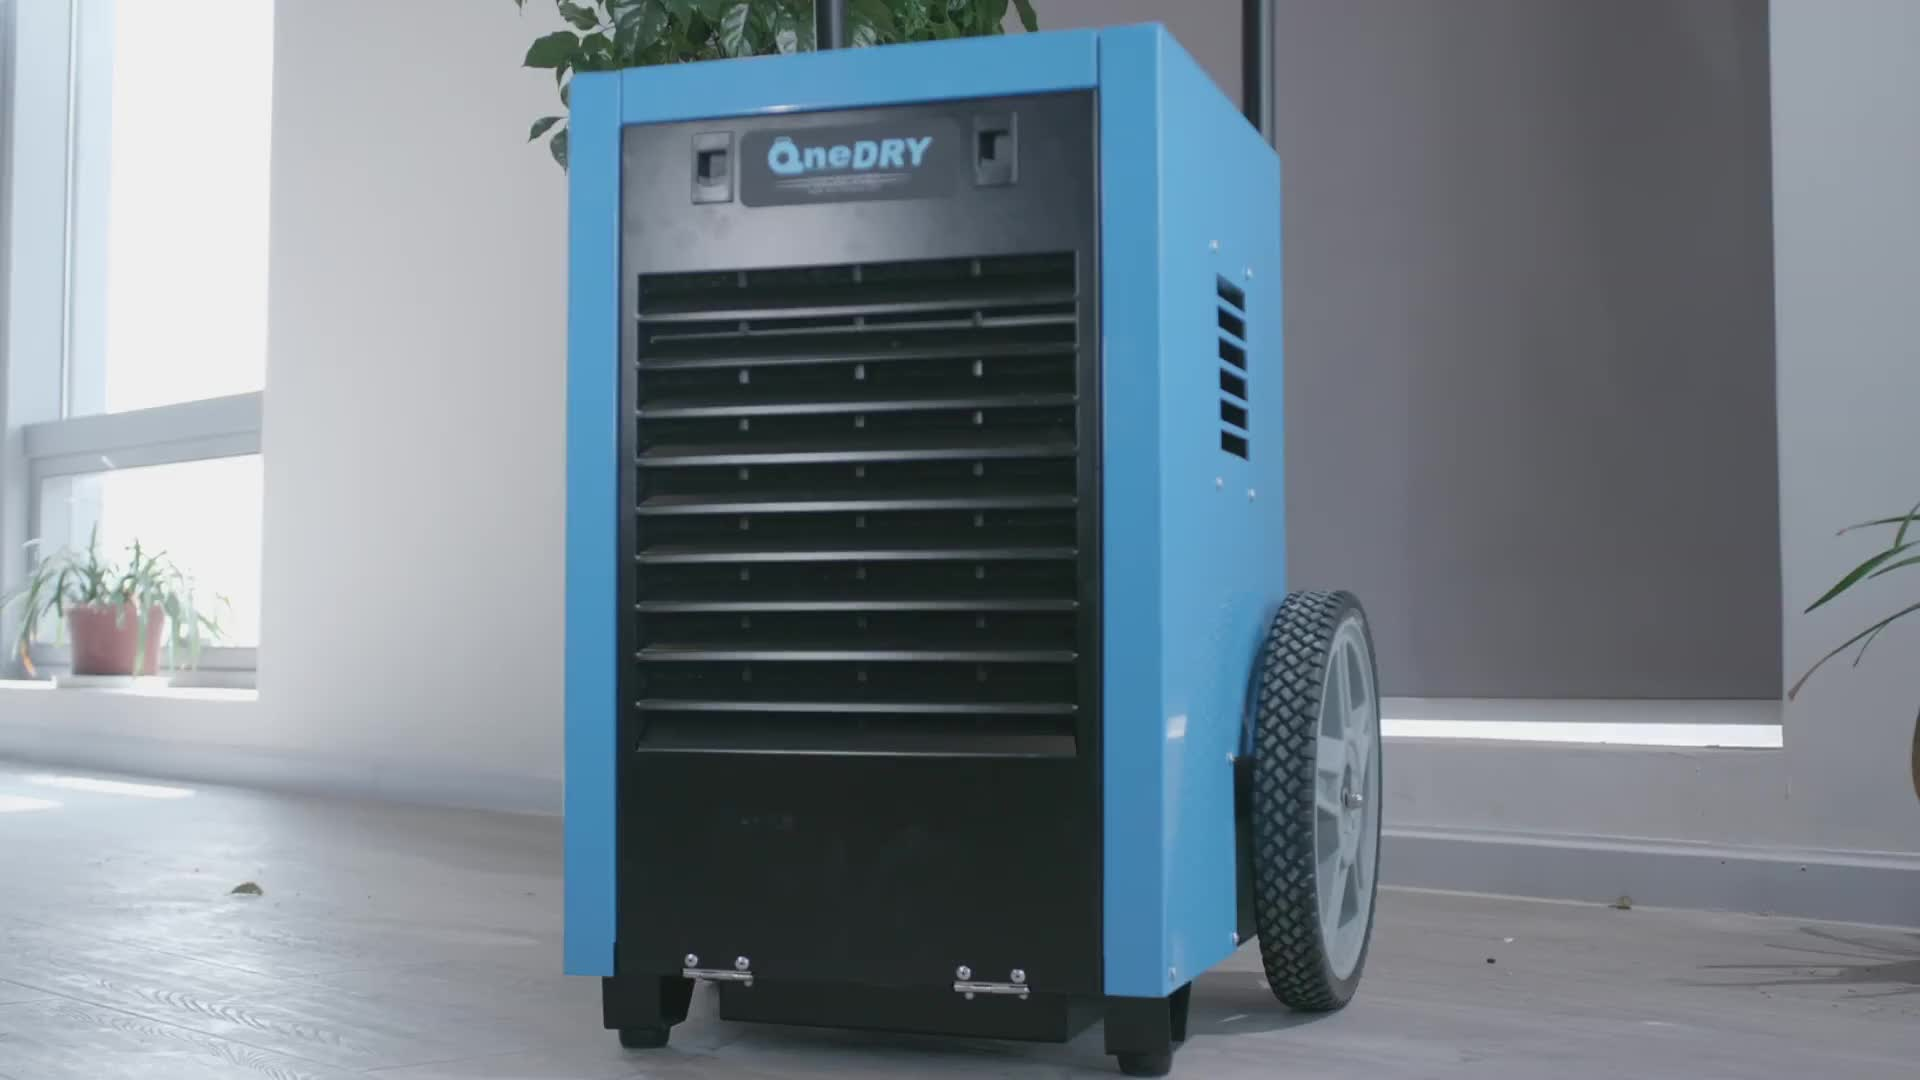 Europe solar powered  auto dryer plastic Air Drying Machine portable dehumidifier industrial dehumidifier commercial for sale